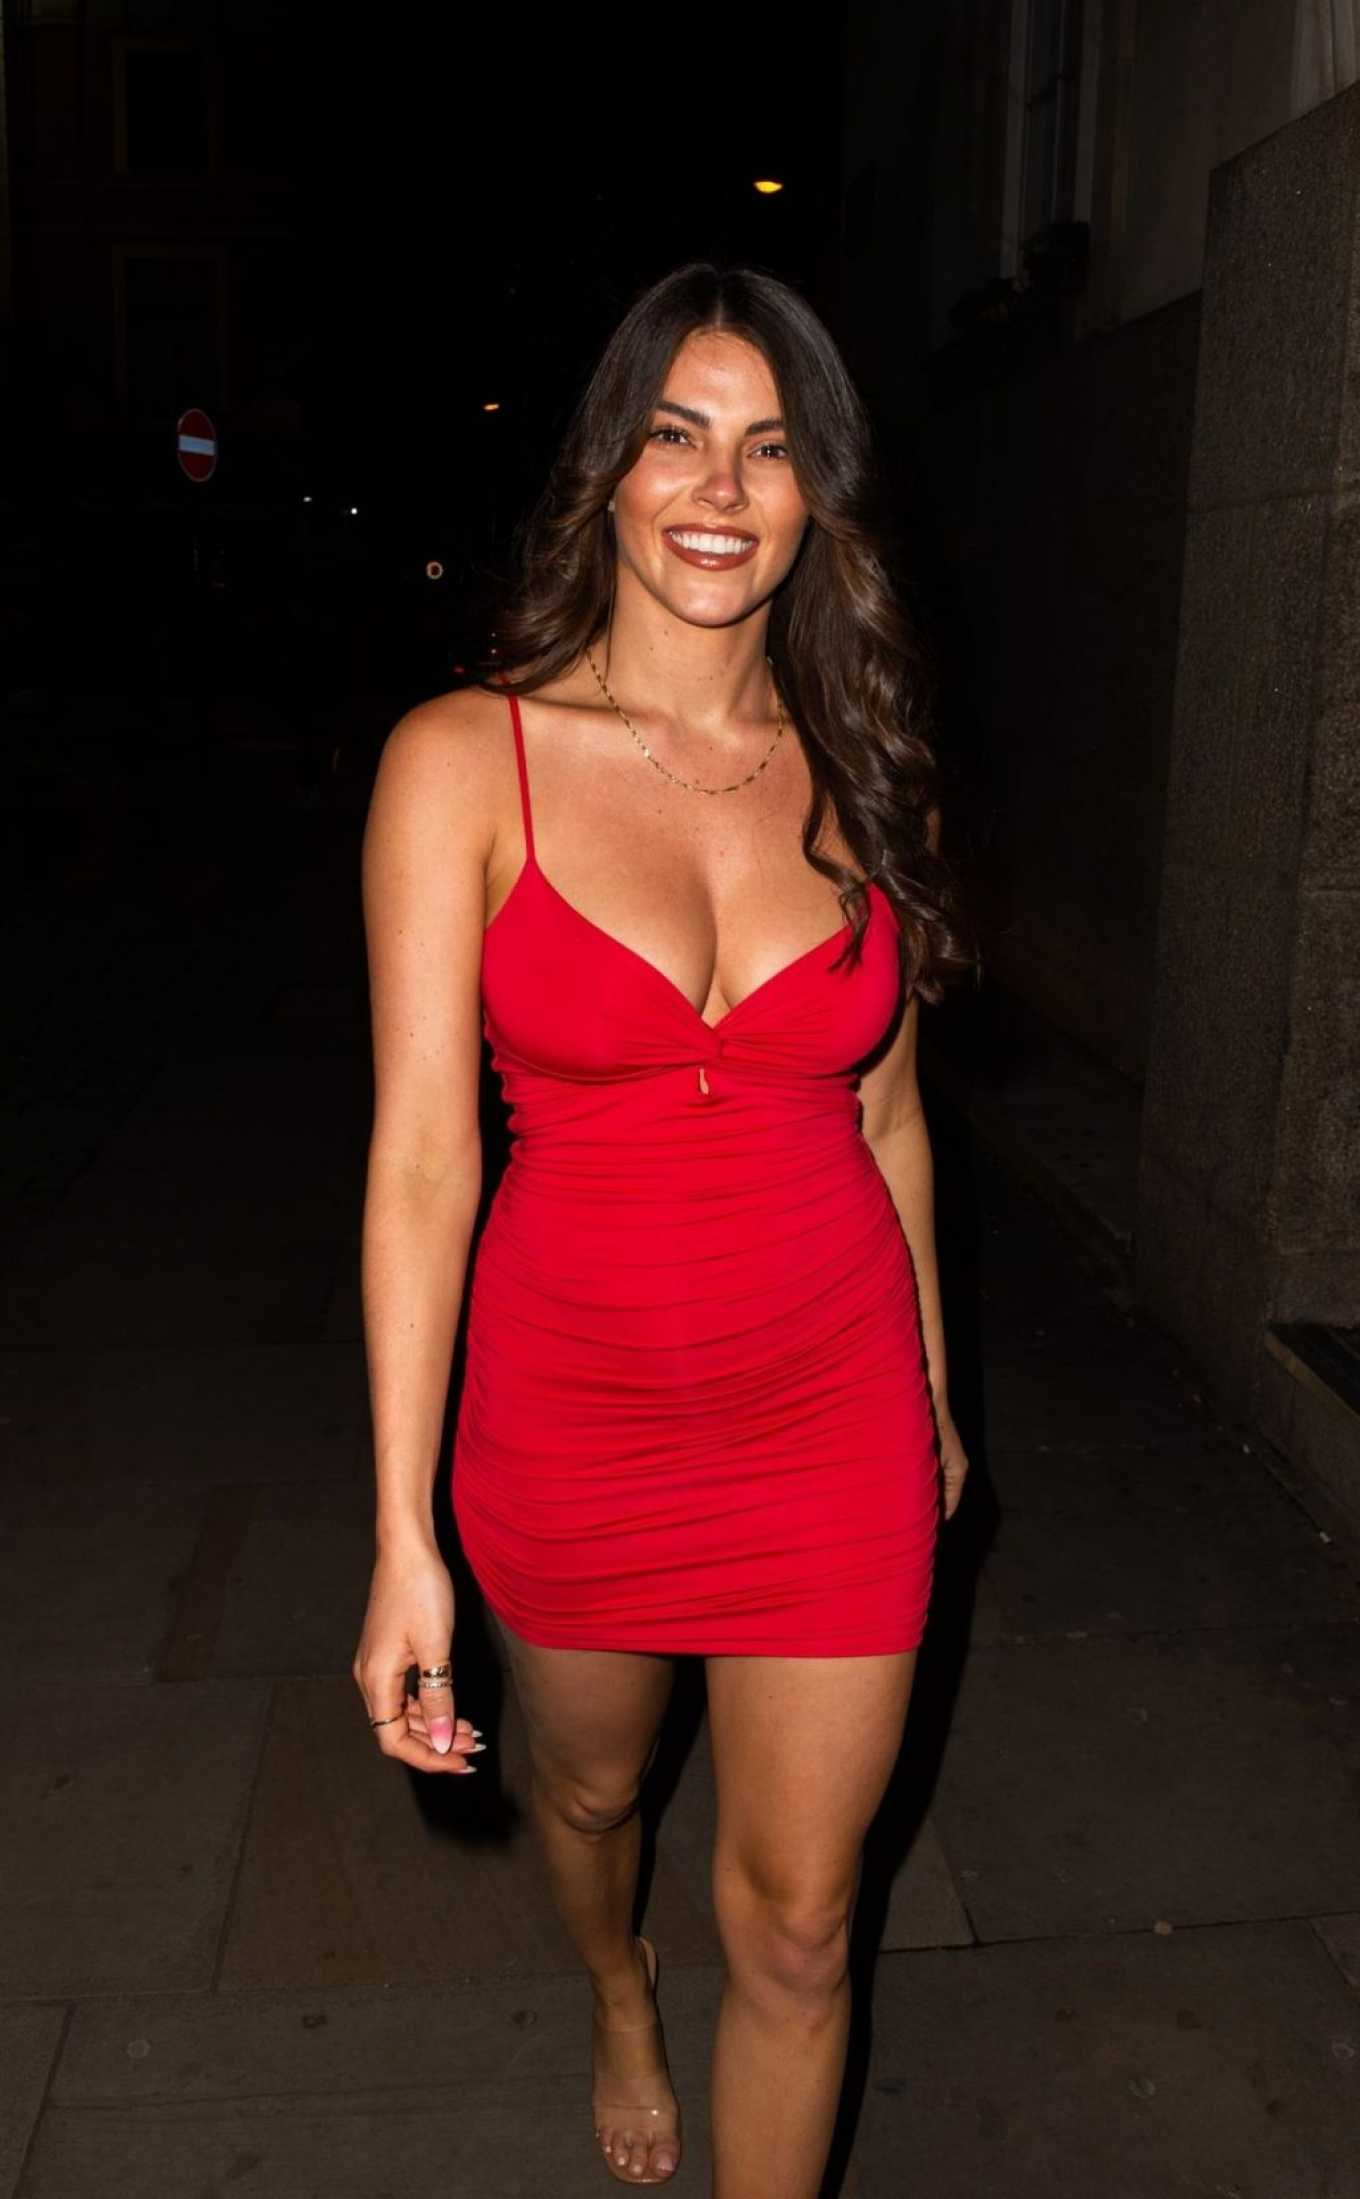 Courthouse Hotel Shoreditch: Rebecca Gormley In Red Mini Dress-09